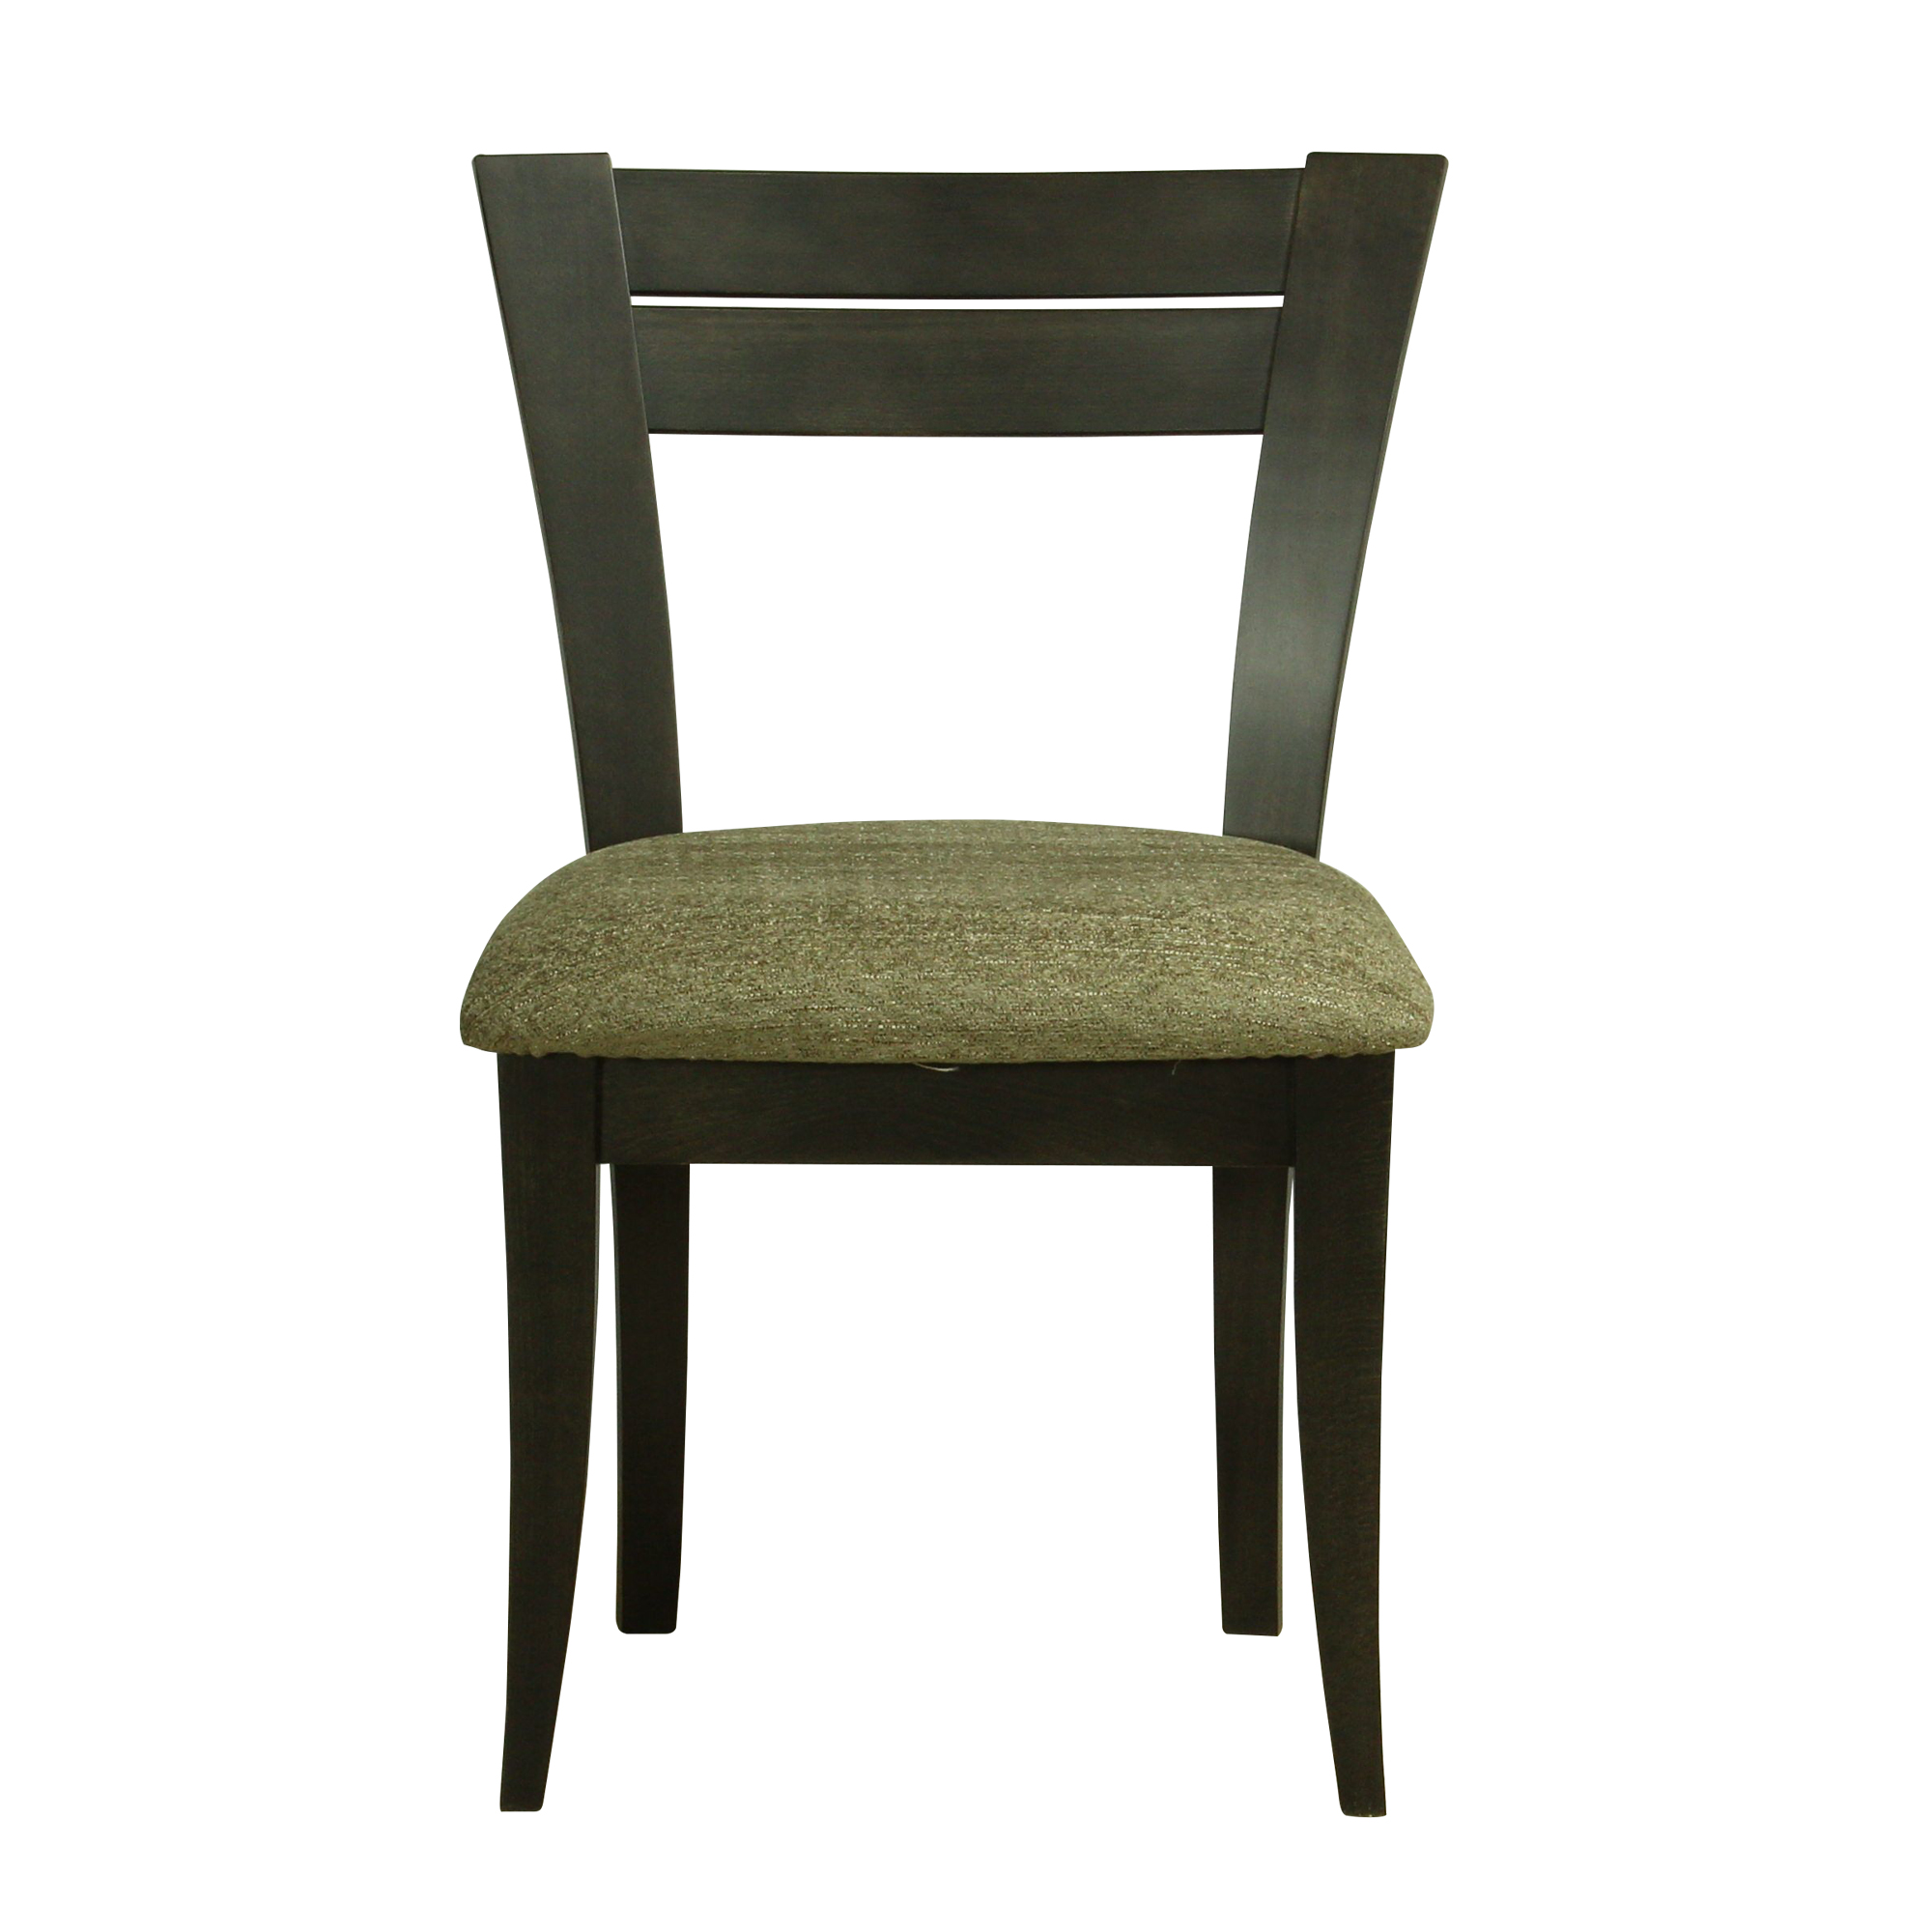 Model 39 Side Chair Upholstered – Saloom Furniture Company